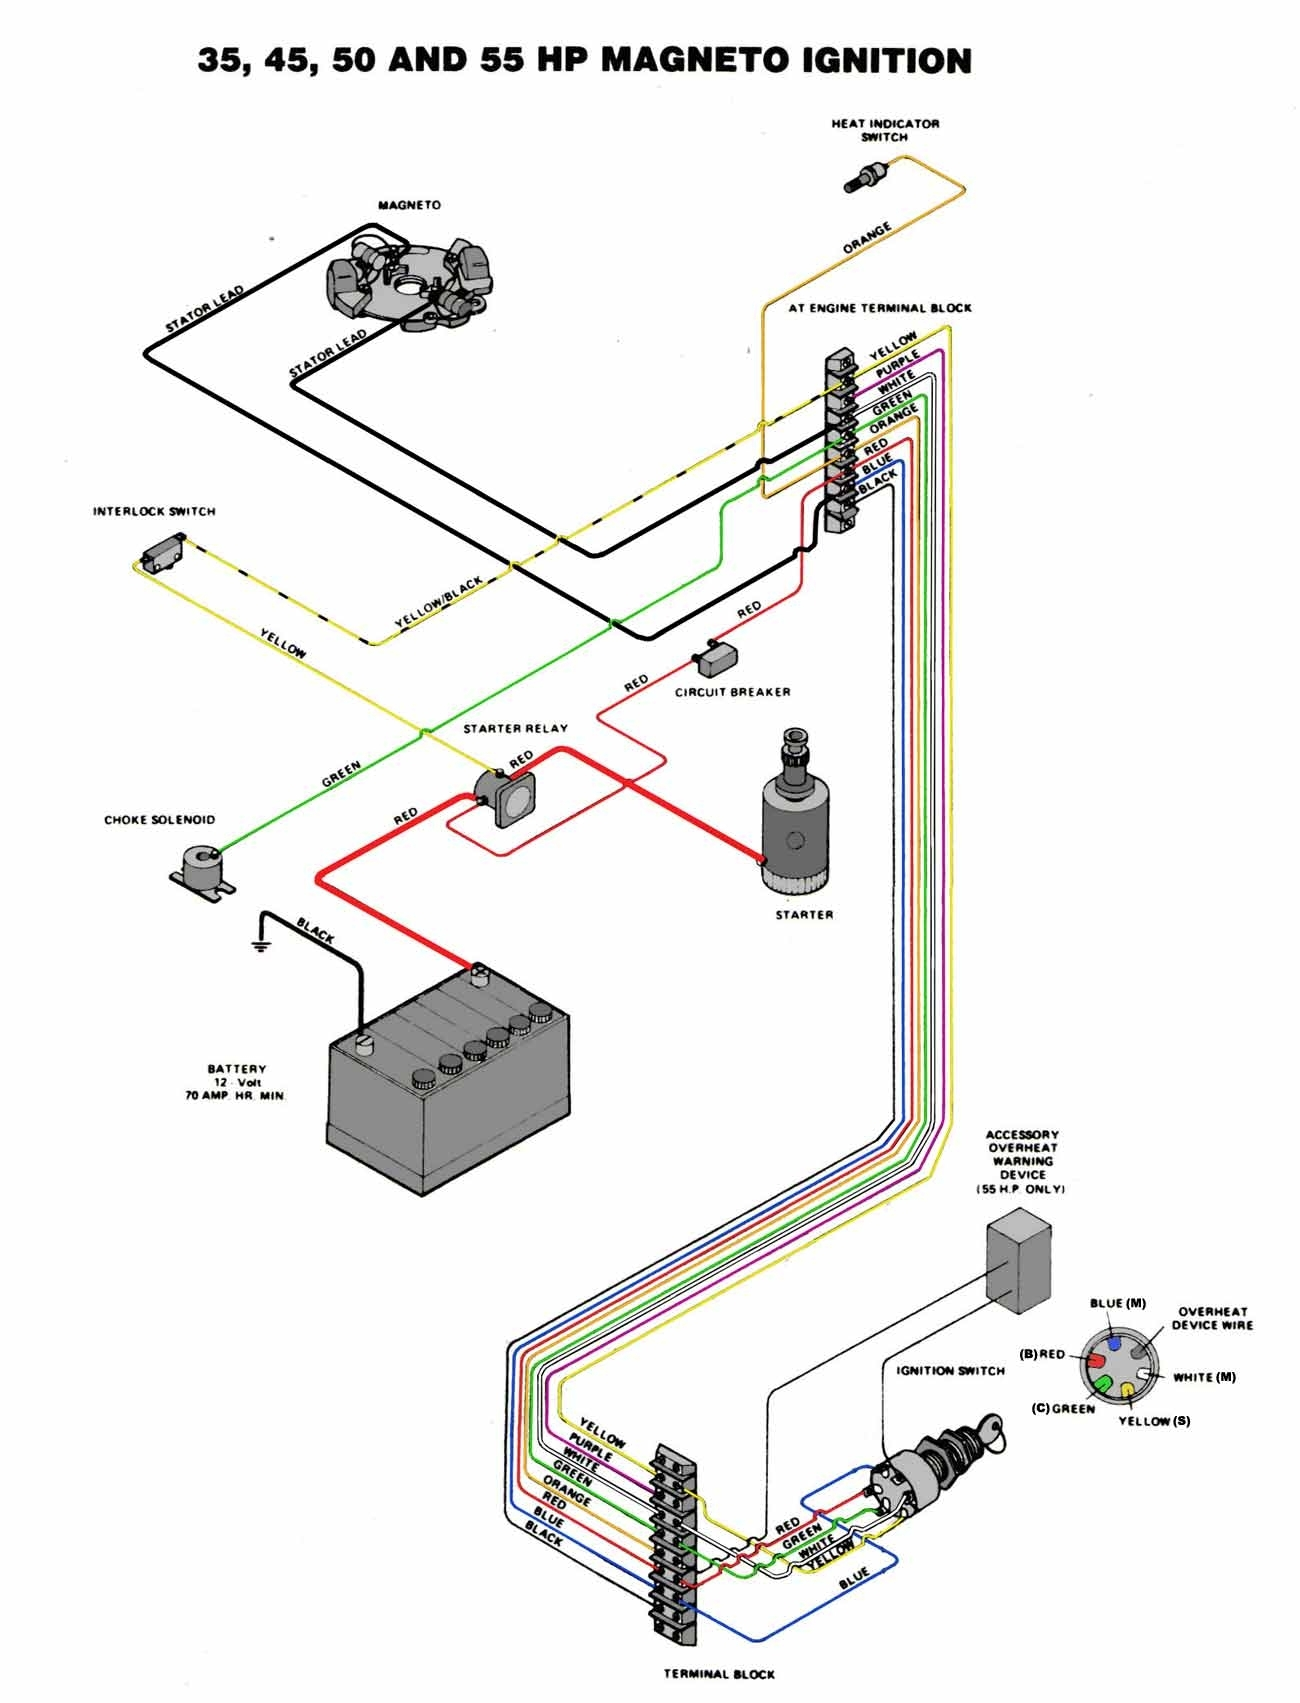 Omc Wiring Diagram On Stratos Bass Boat Libraries 1997 282 B Diagrams Scemab Everything Information